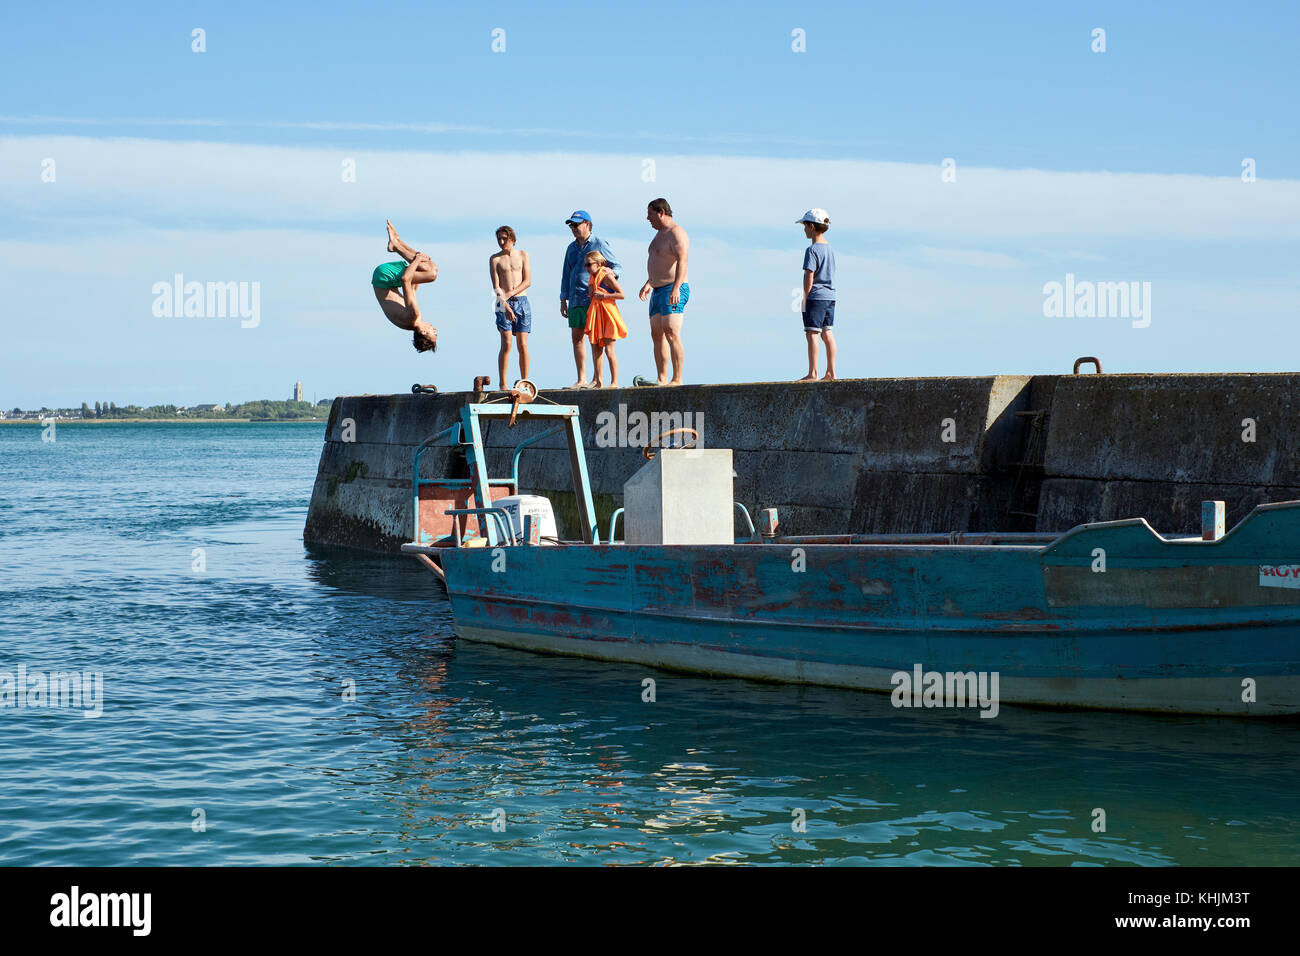 Acrobatic somersaulting fun in the sea at Le Croisic on the Guerande Peninsula in the Loire-Atlantic region of Brittany Stock Photo